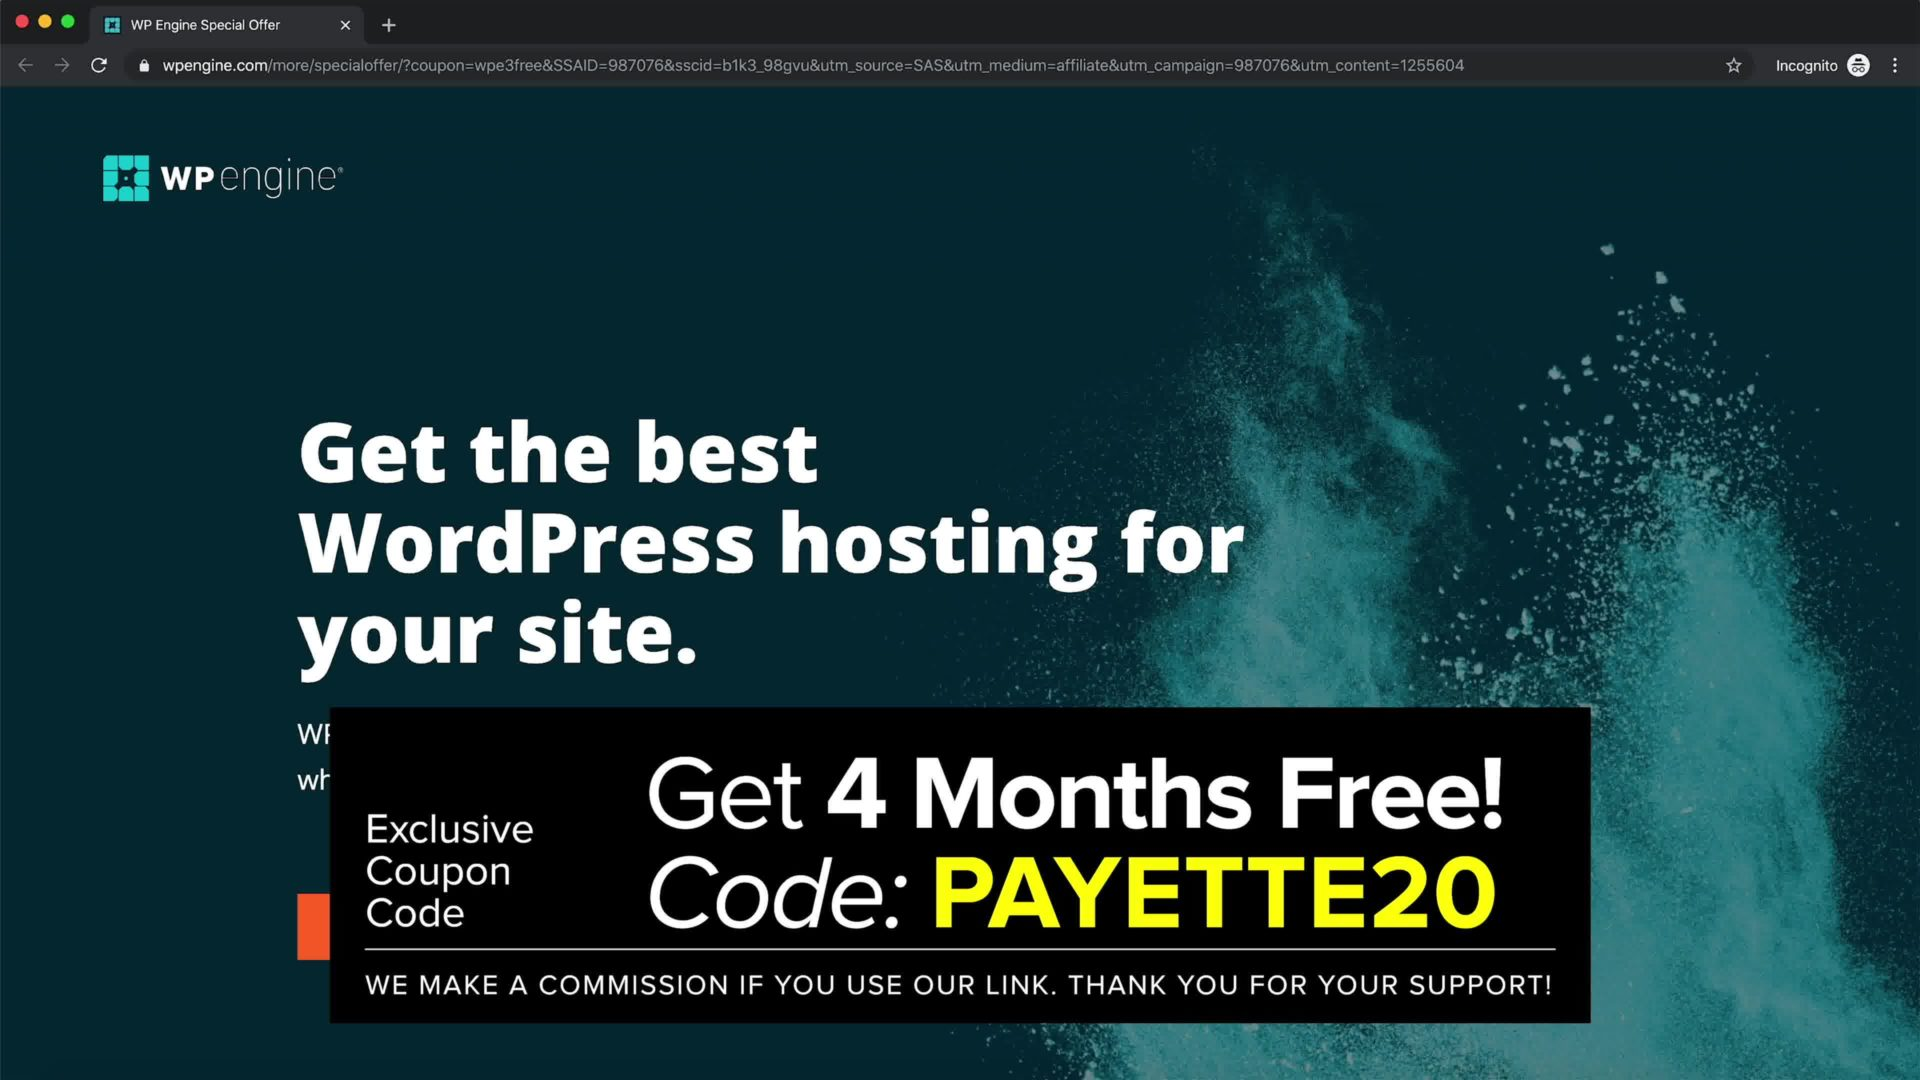 wp engine home page with coupon